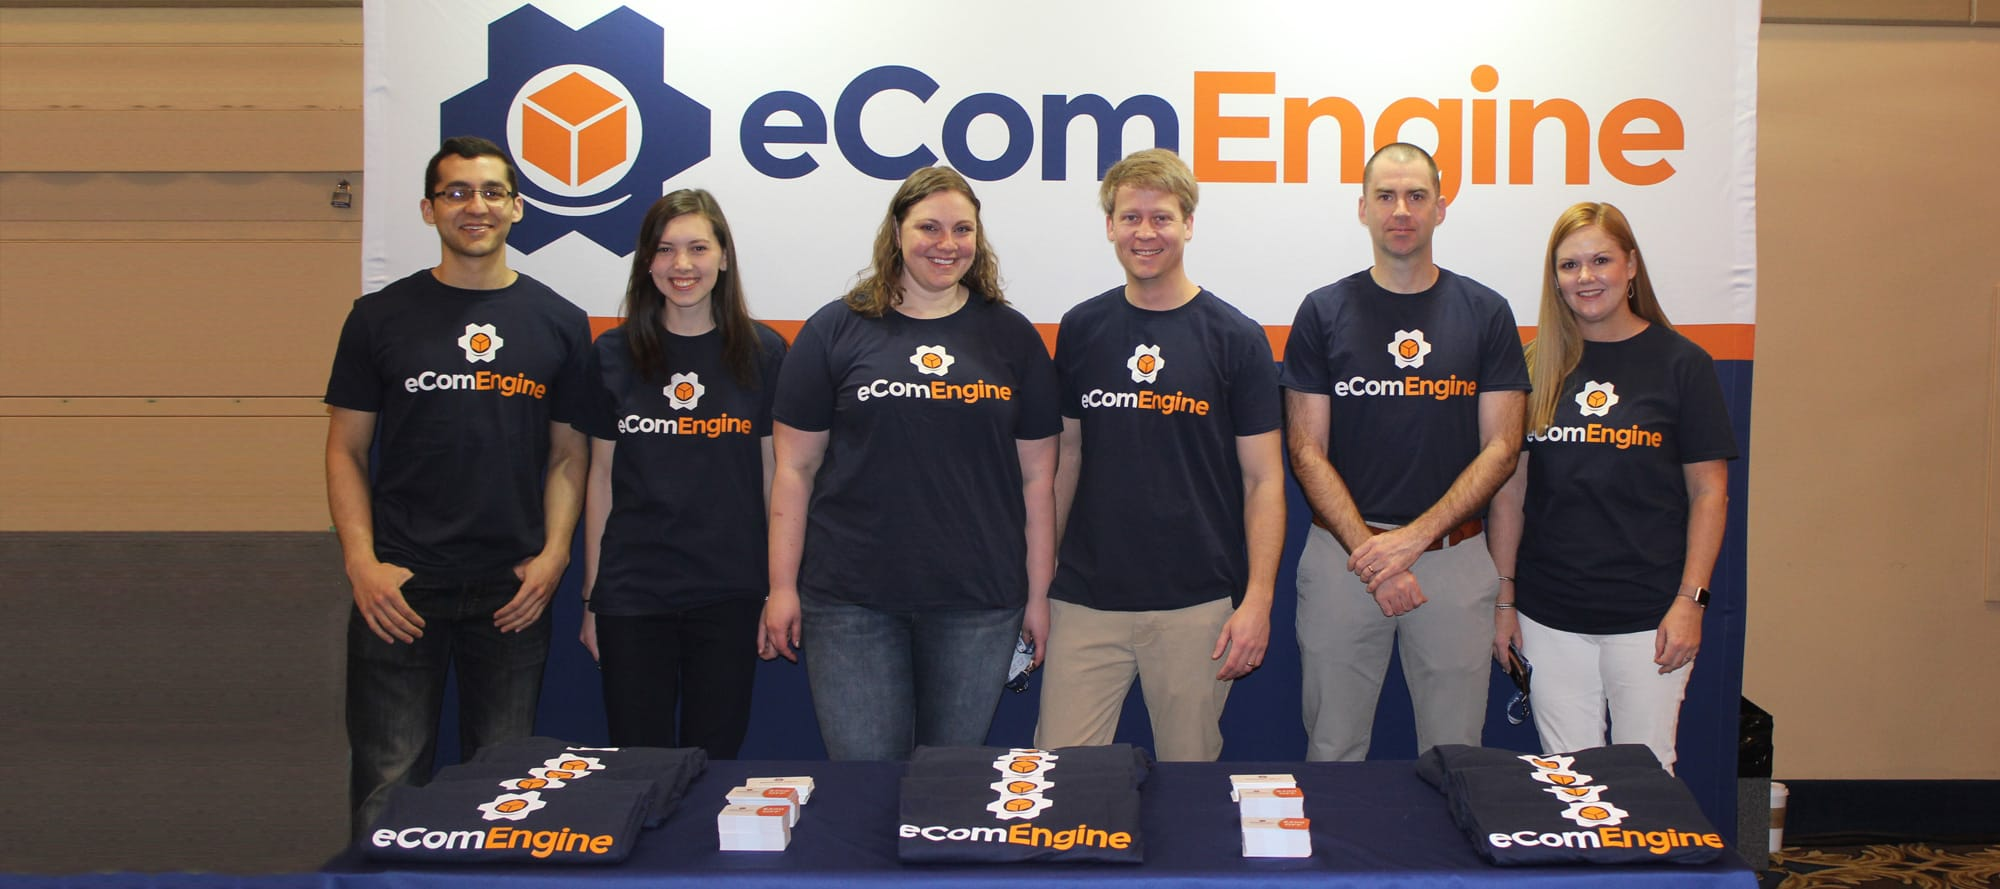 Six smiling eComEngine employees who are standing in front of a large eComEngine banner